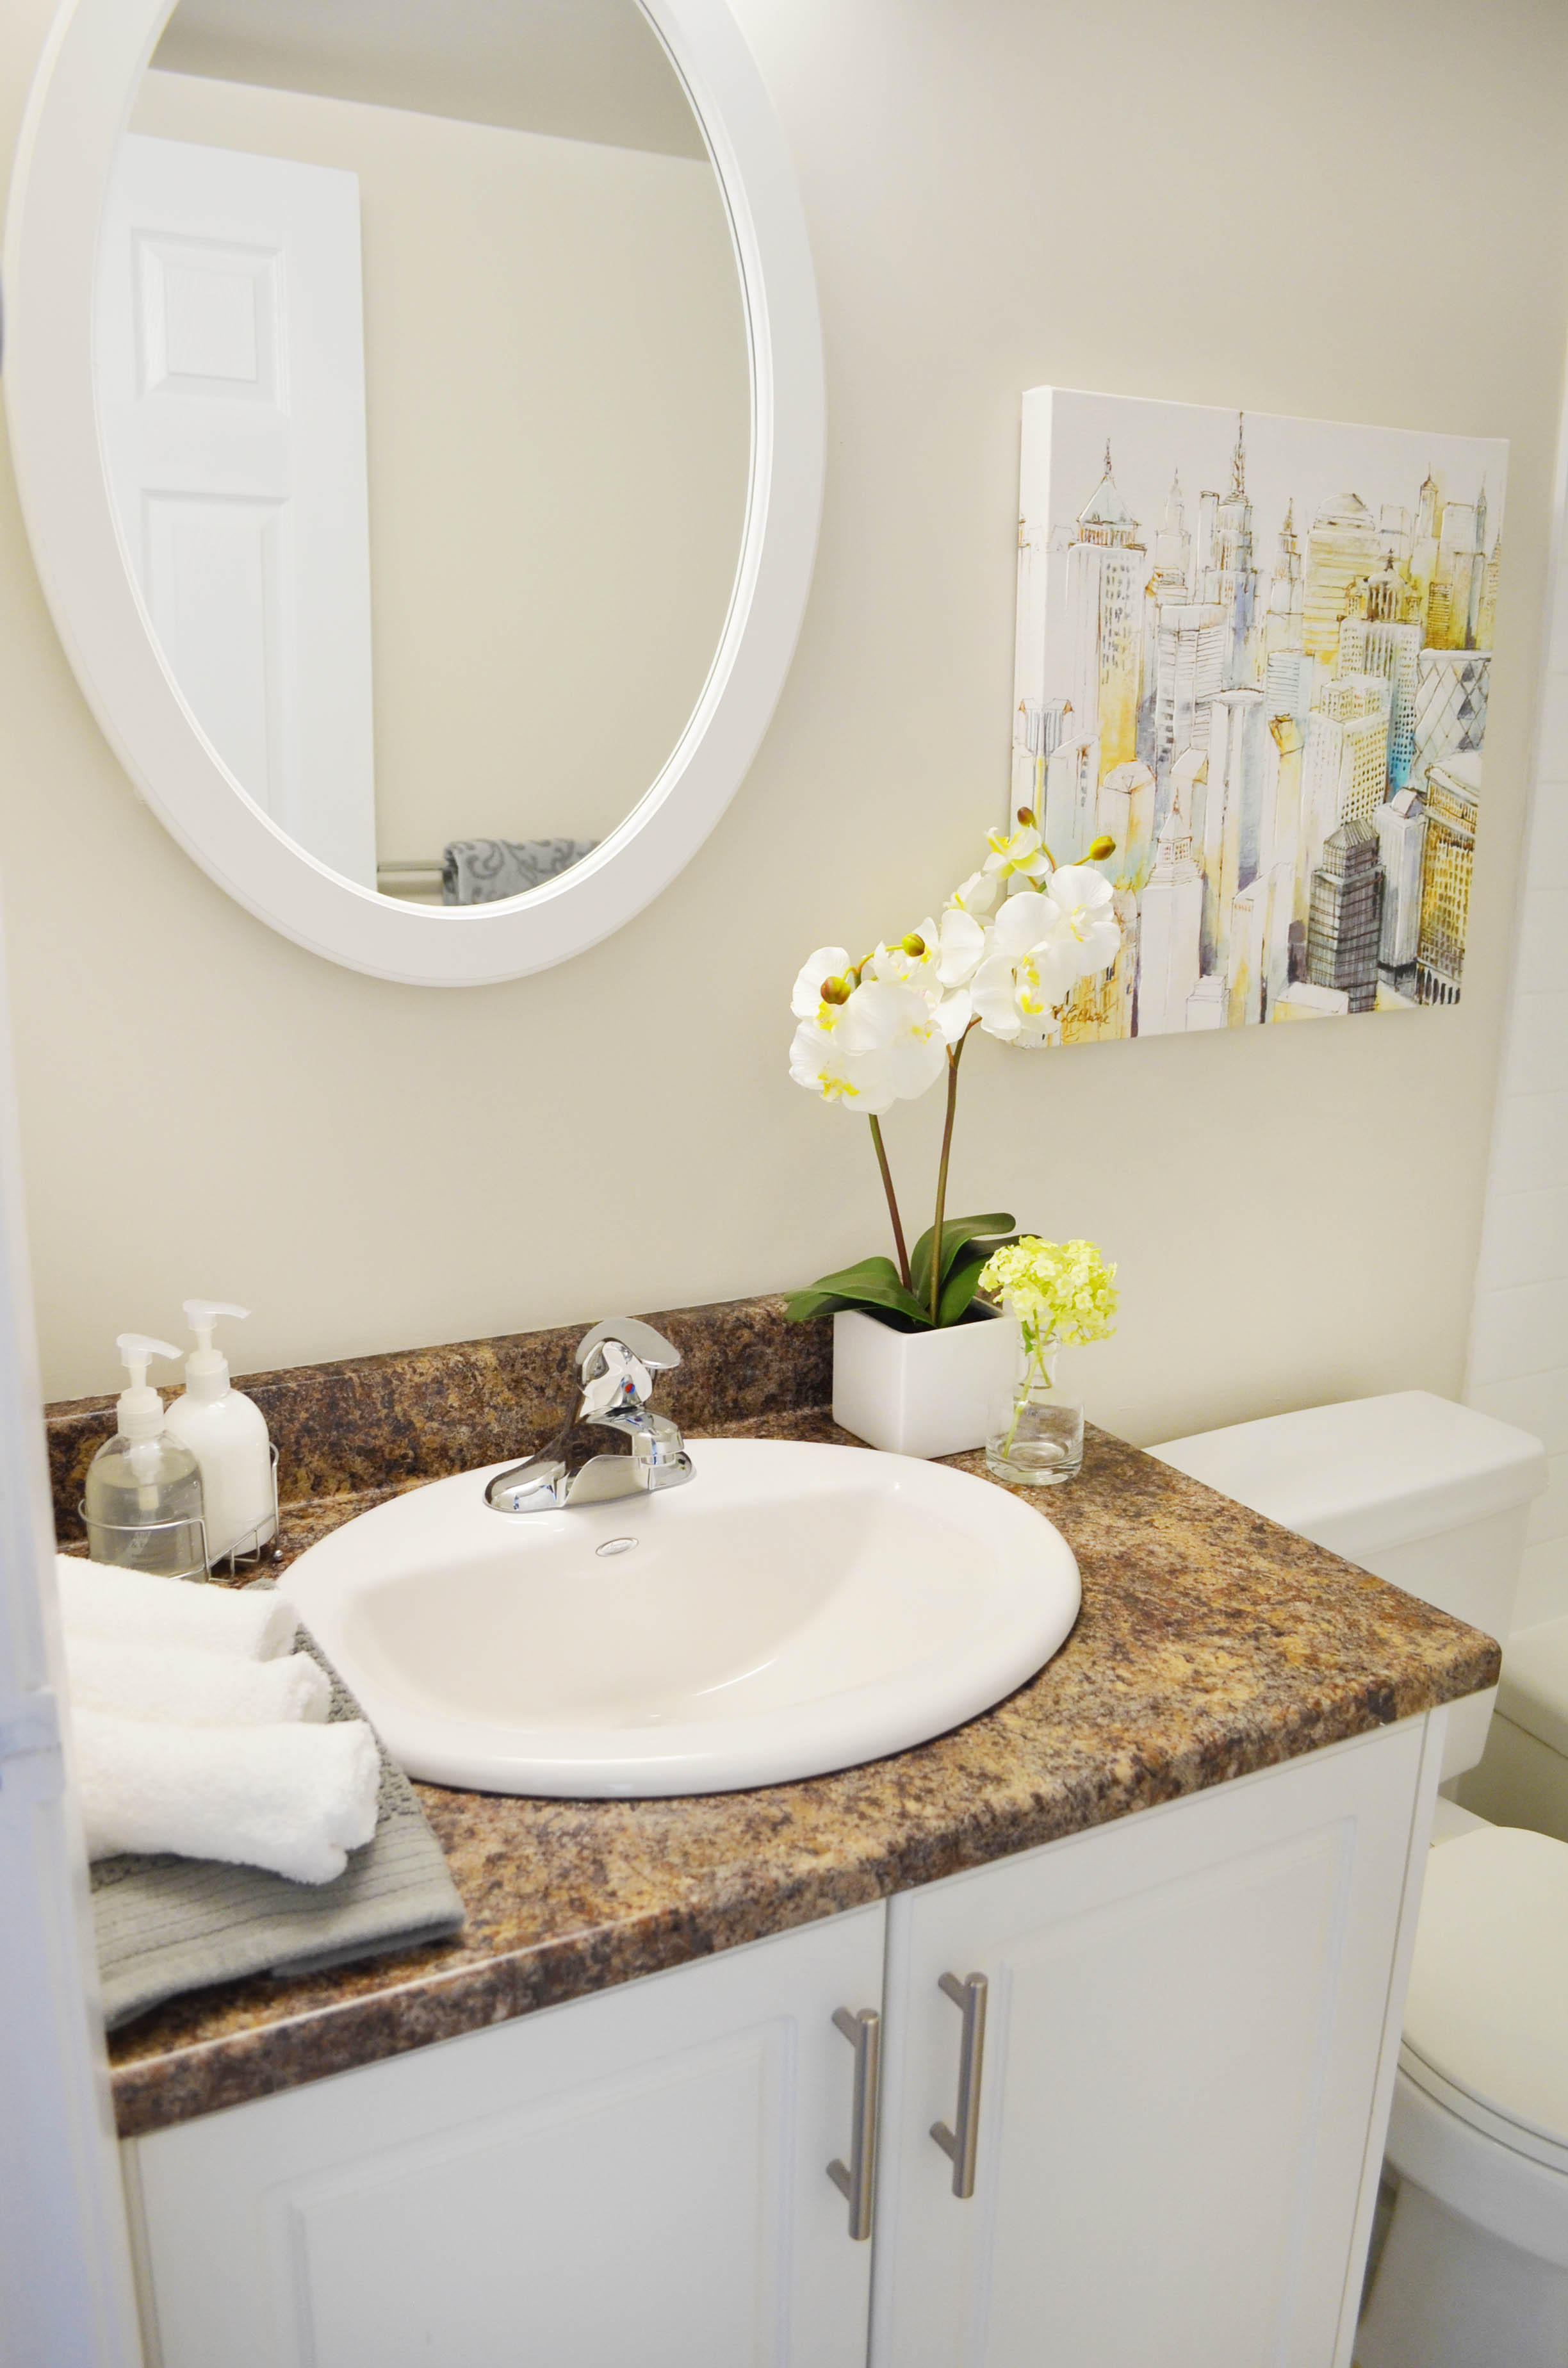 Halifax Home Stager Real Estate Home Staging Pam MacKinnon Professional Home Stager Vacant 5